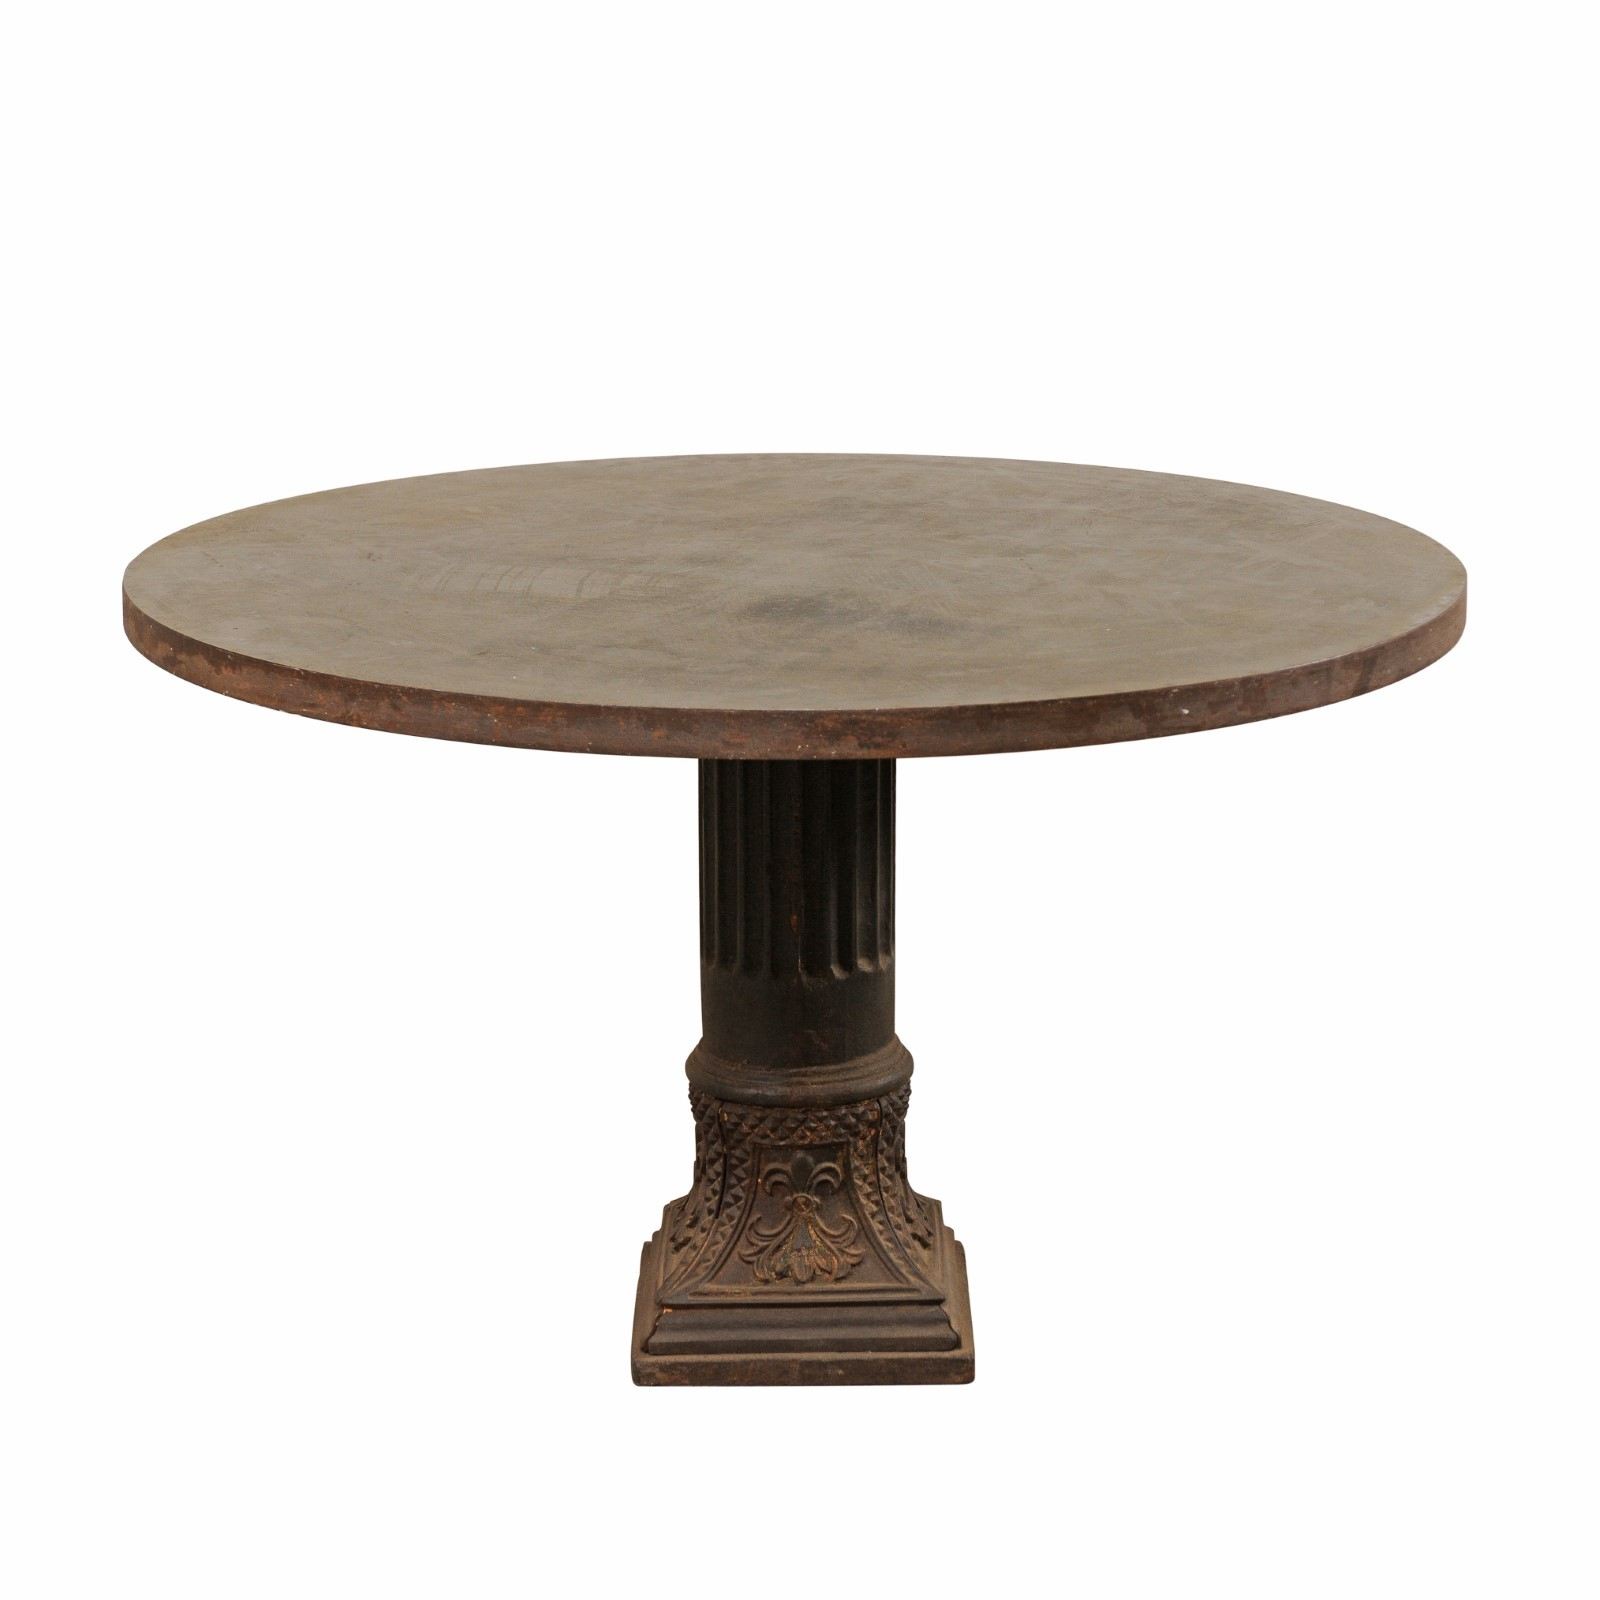 Iron Column Base Table, 4 ft. Diameter